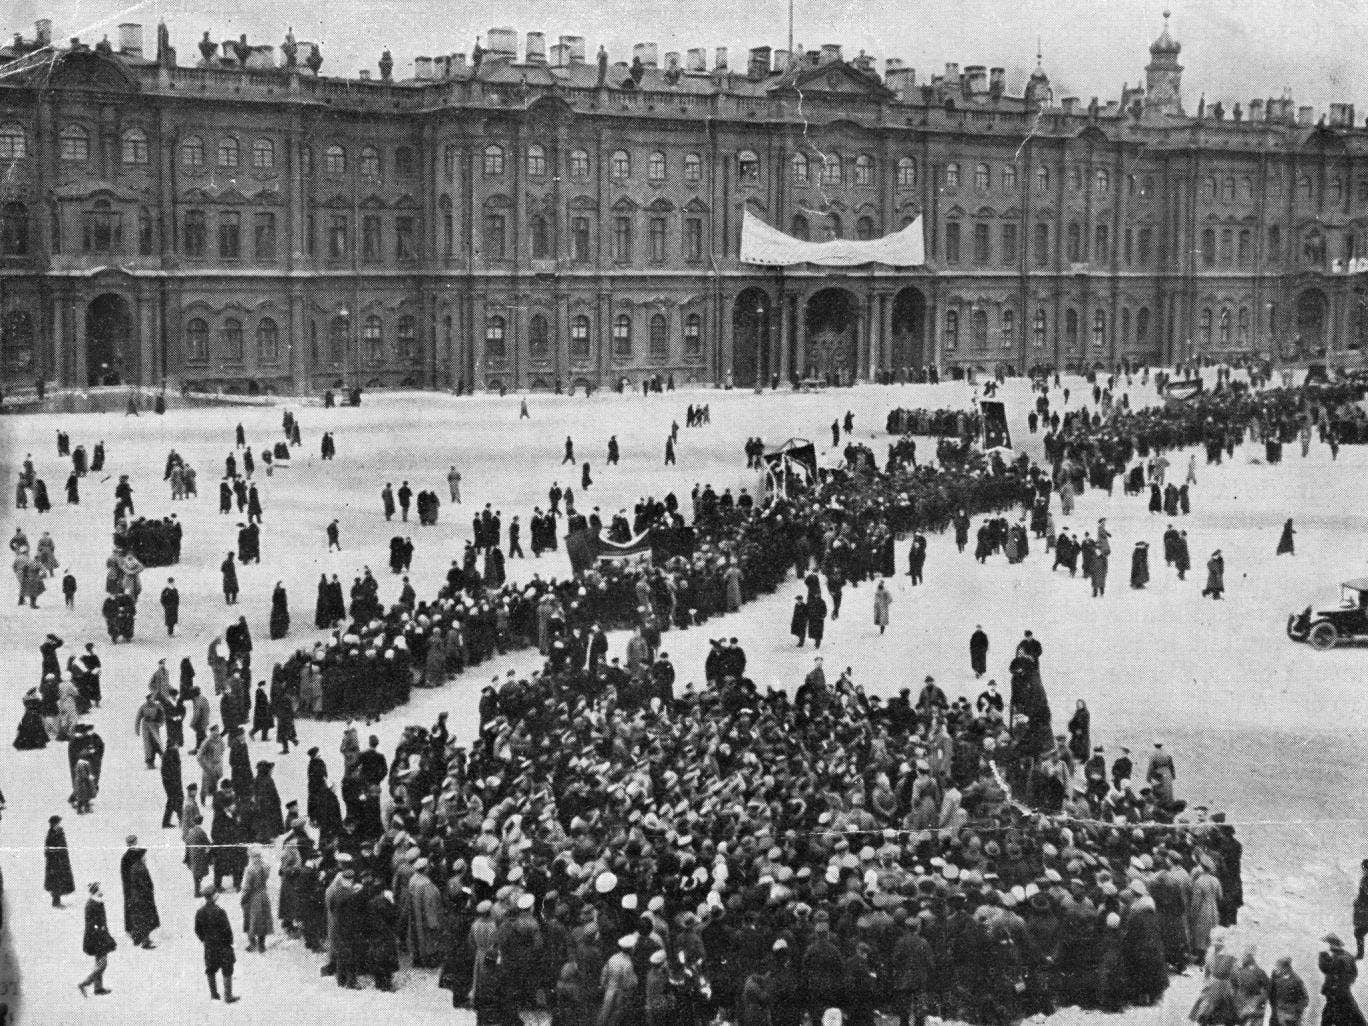 Crowds at Petrograd's Winter Palace during the October Revolution. (Russia still used the Julian calendar, in which the West's 7 November equated to 25 October.)